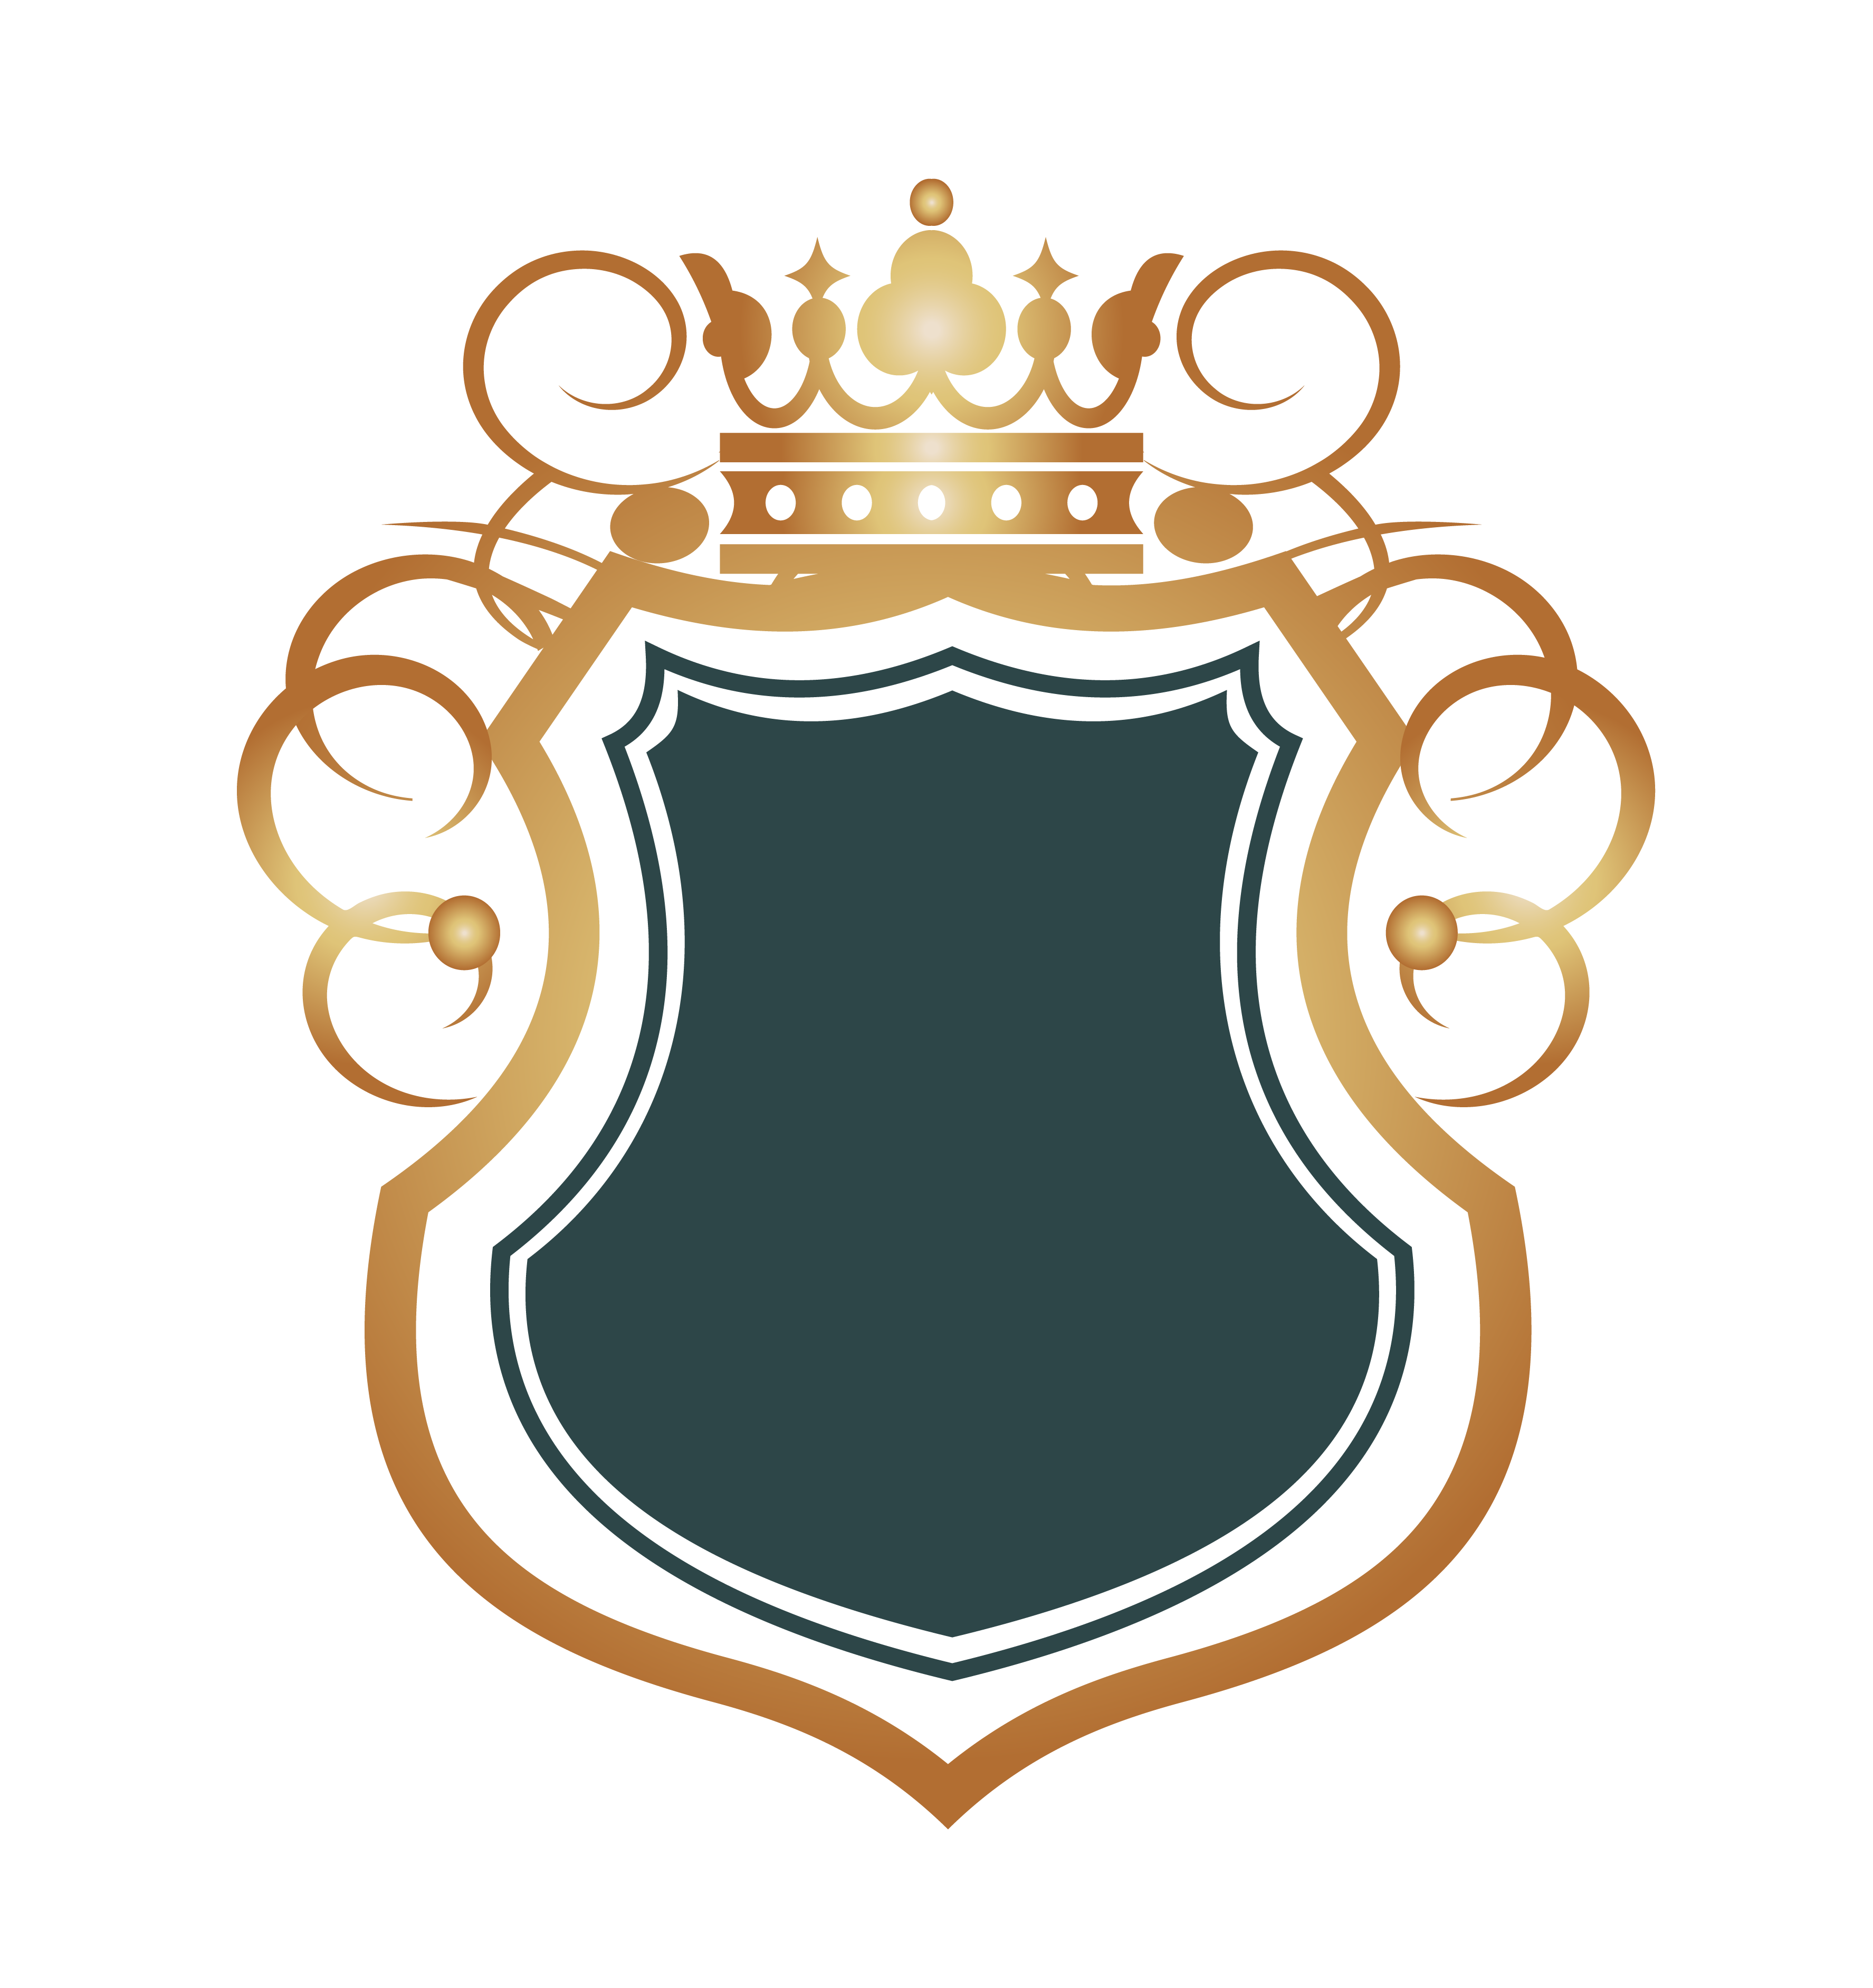 Black crown with shield clipart image royalty free Euclidean vector Computer file - Border yellow crown 3550*3767 ... image royalty free